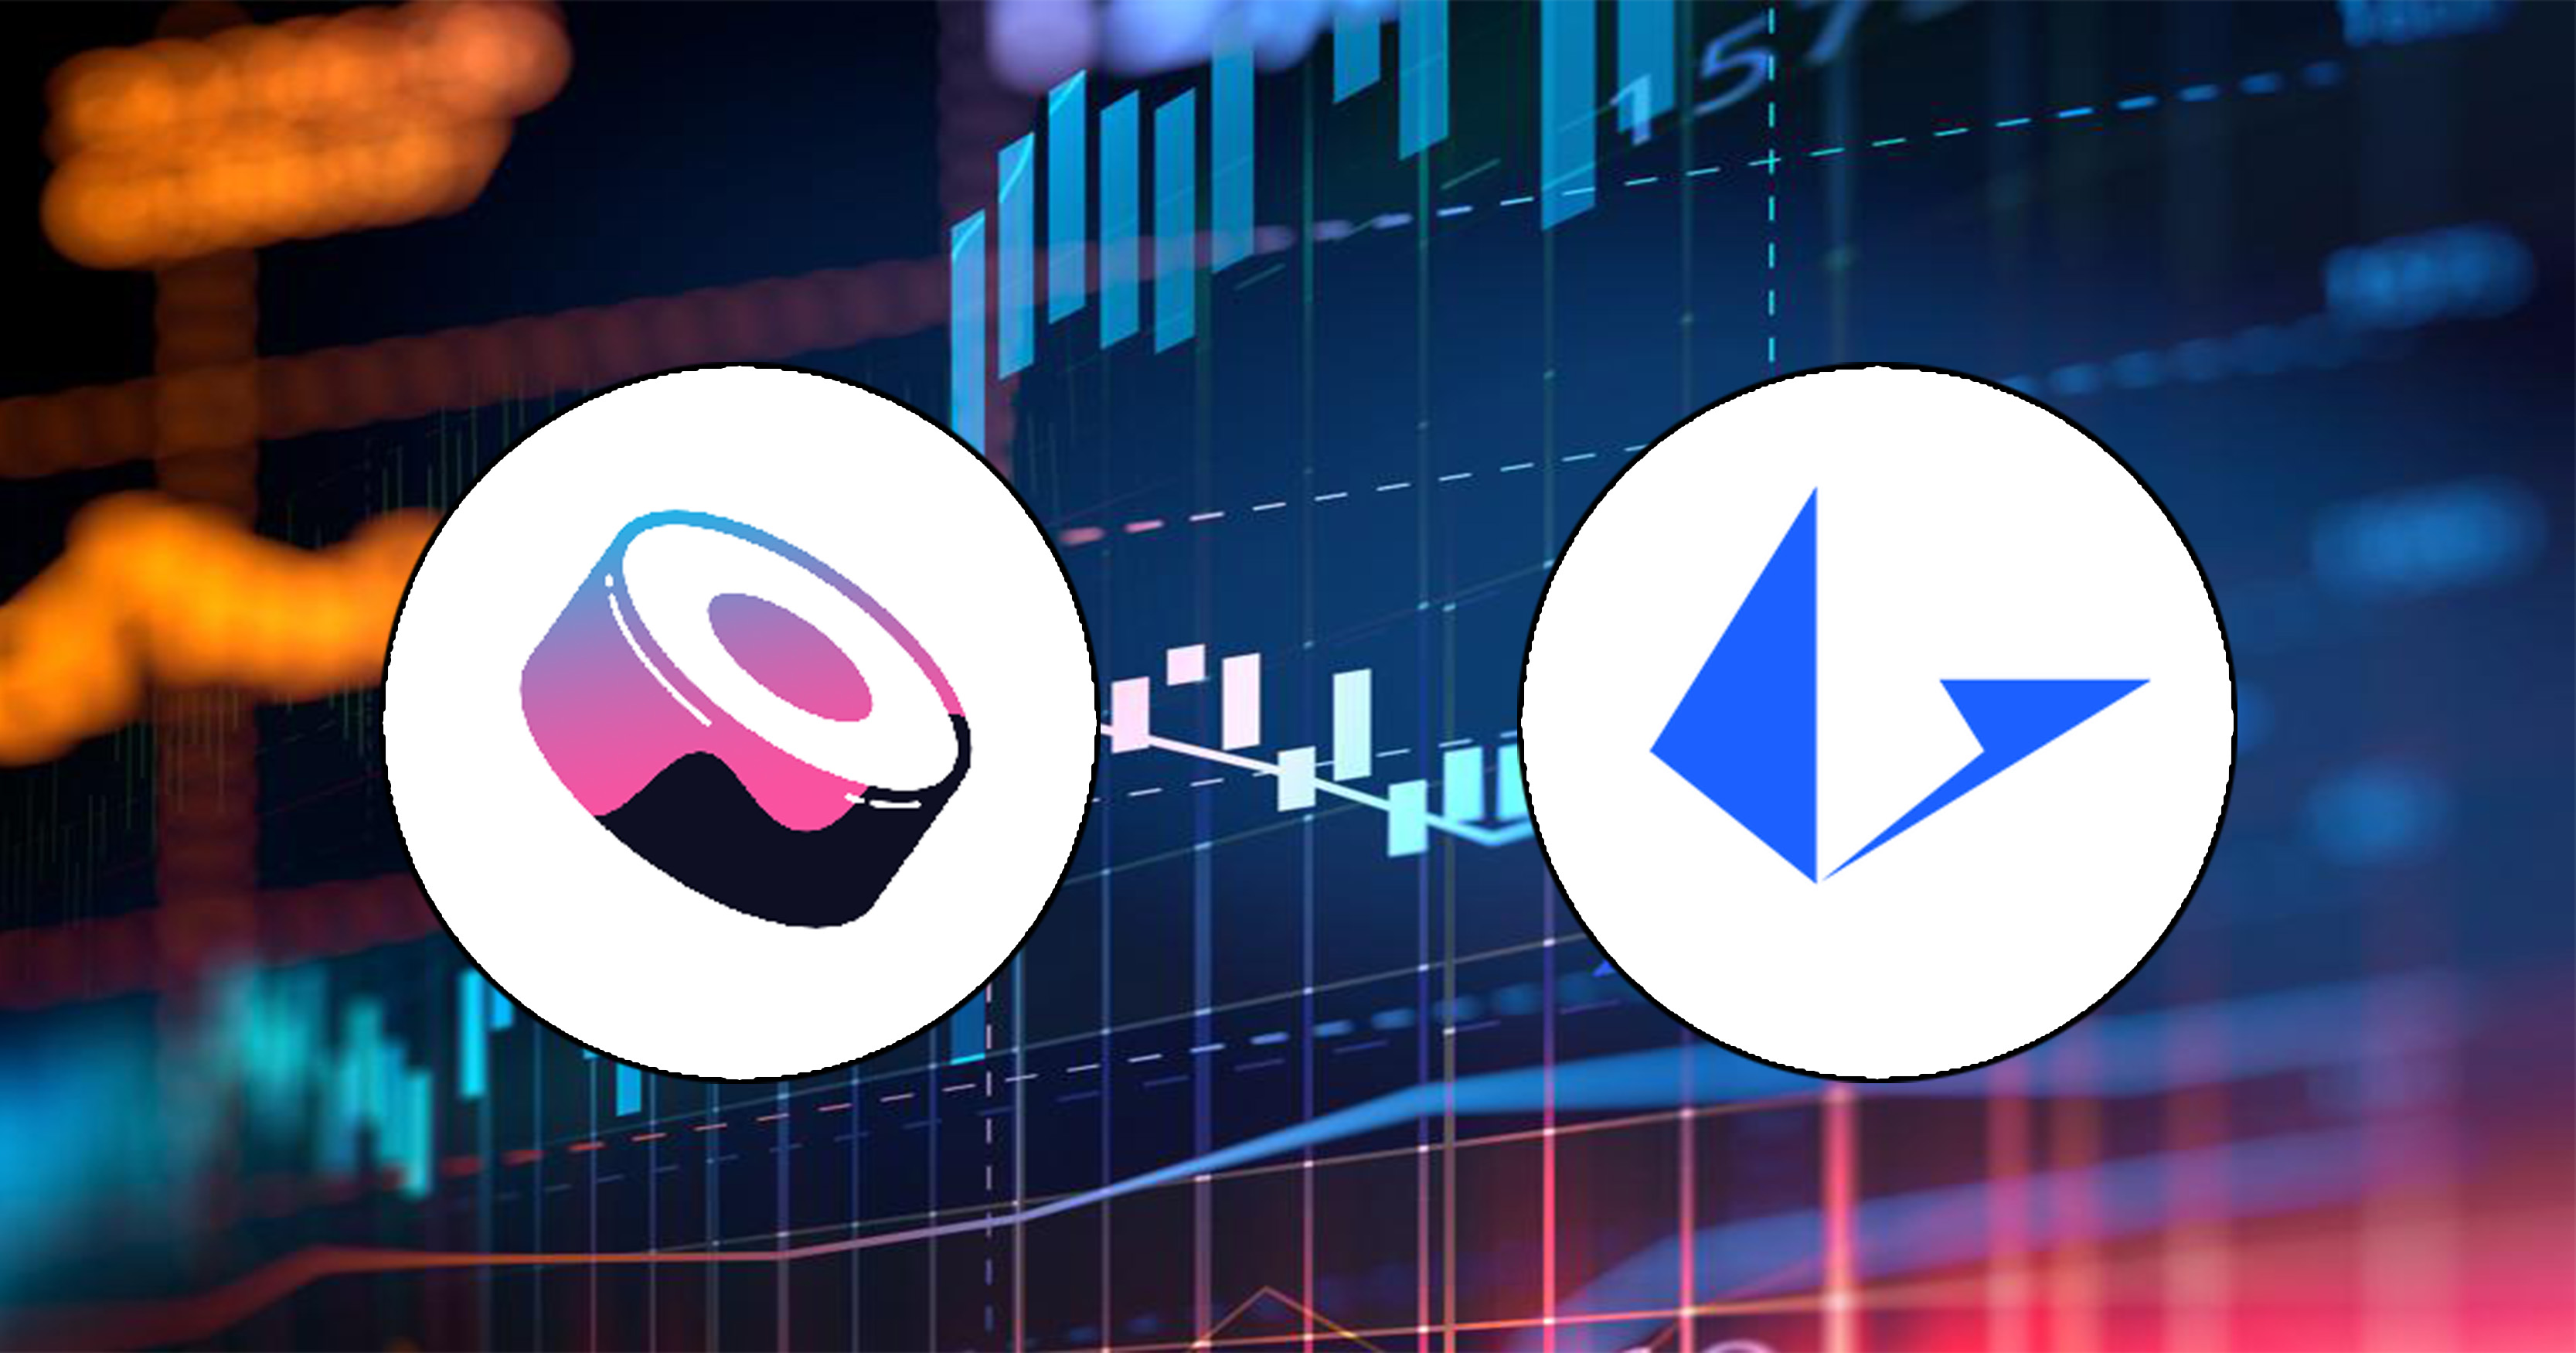 Loopring (LRC) and SushiSwap (SUSHI) Technical Analysis: What to Expect?